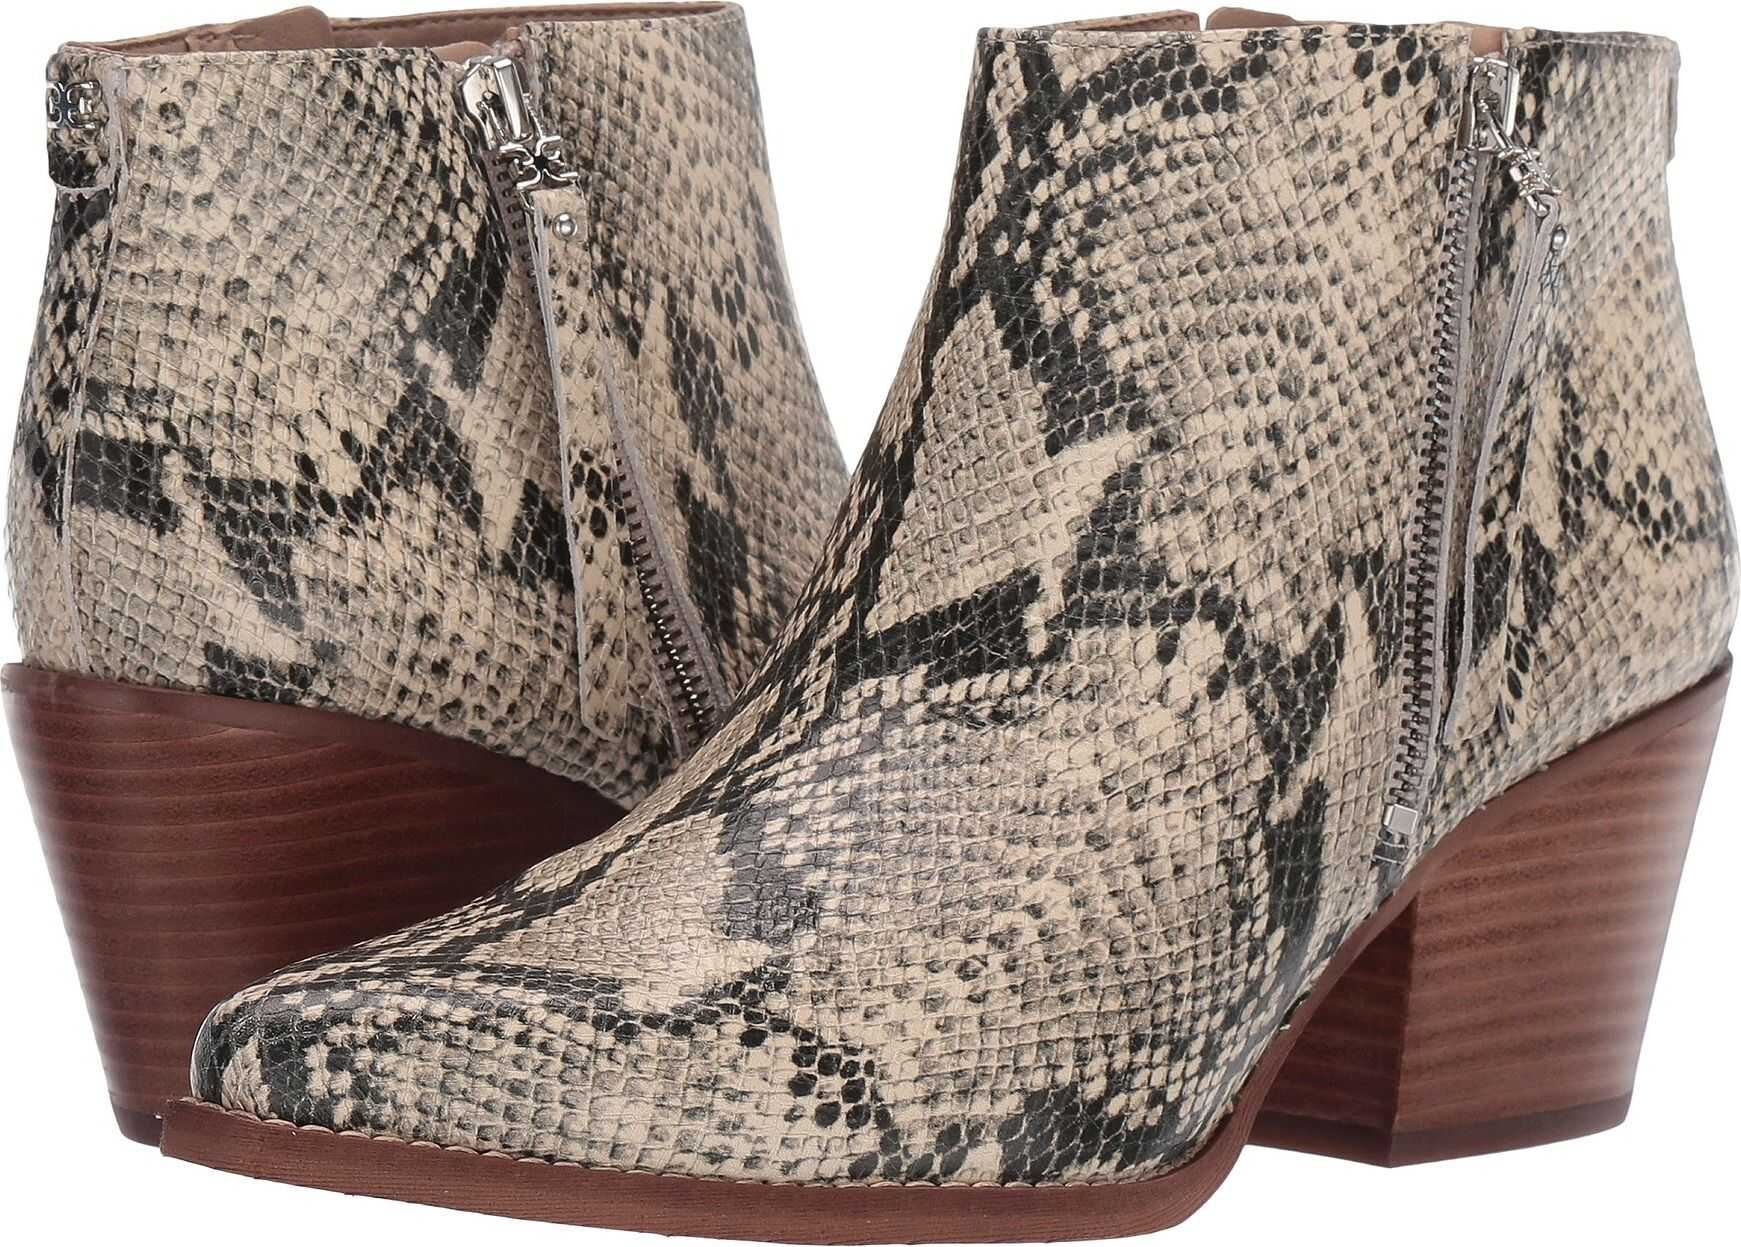 Sam Edelman Walden Beach Multi Pacific Snake Leather